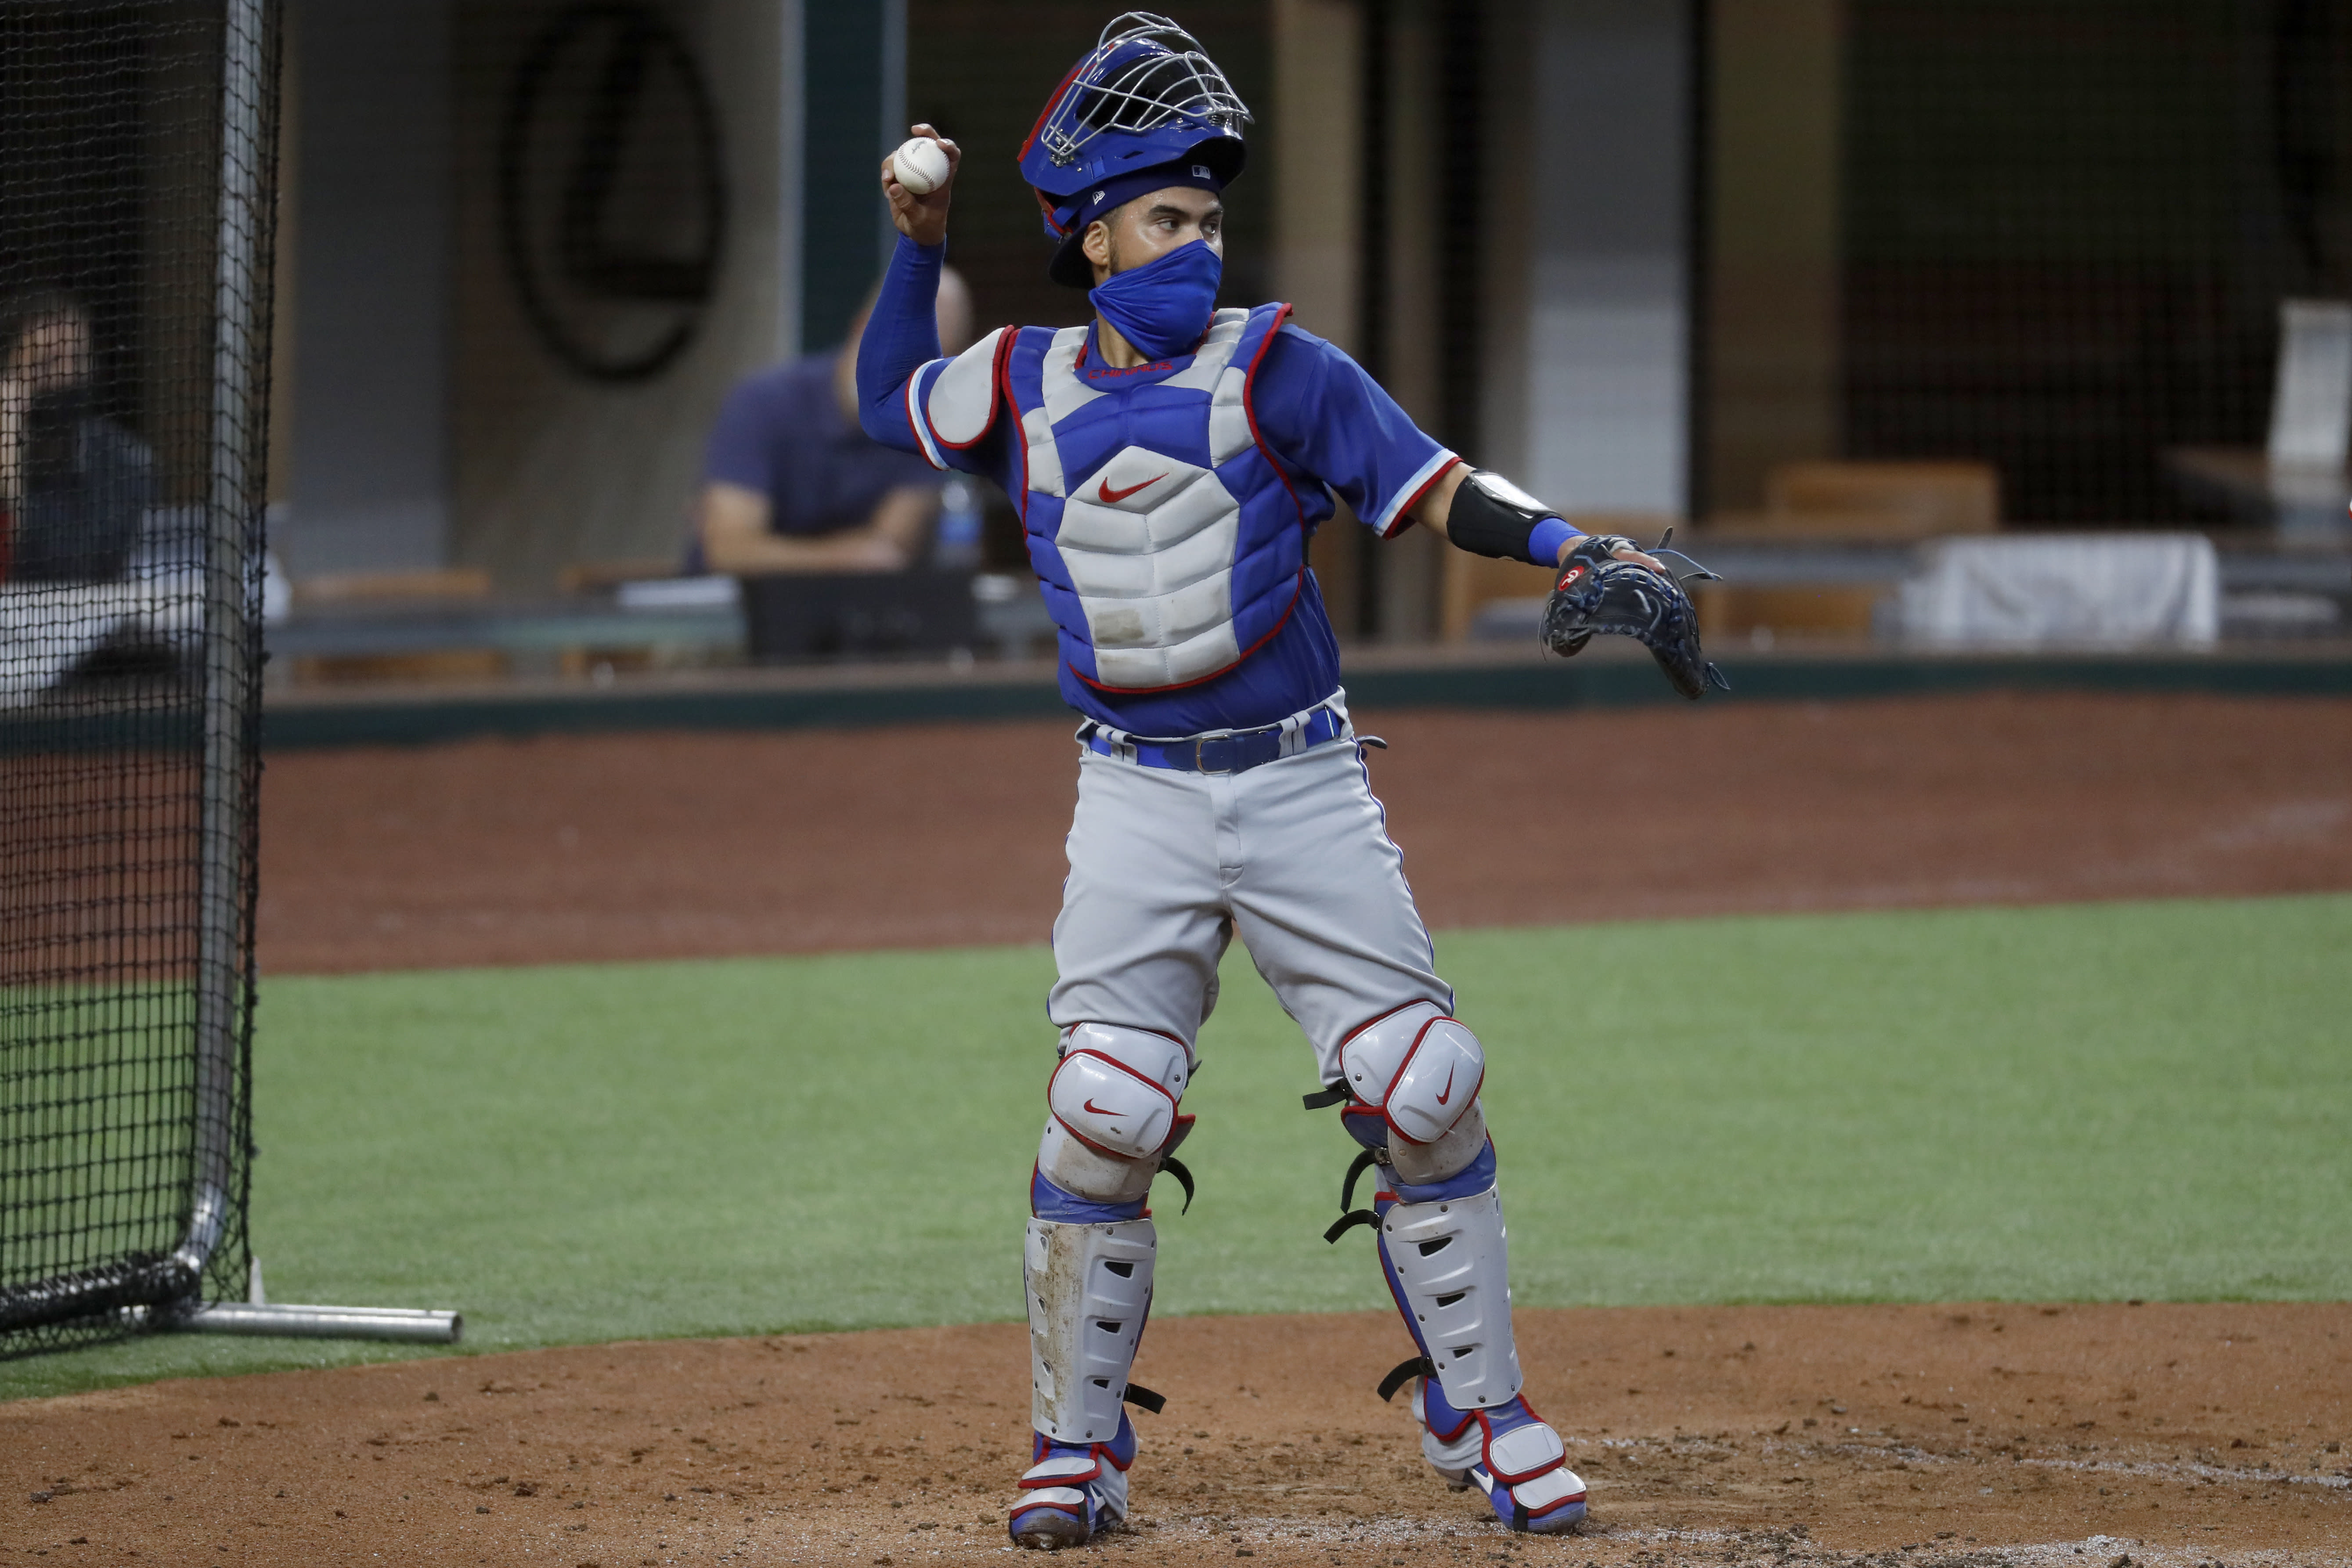 Texas Rangers catcher Robinson Chirinos throws to the mound during an intrasquad game during baseball practice in Arlington, Texas, Thursday, July 9, 2020. (AP Photo/Tony Gutierrez)